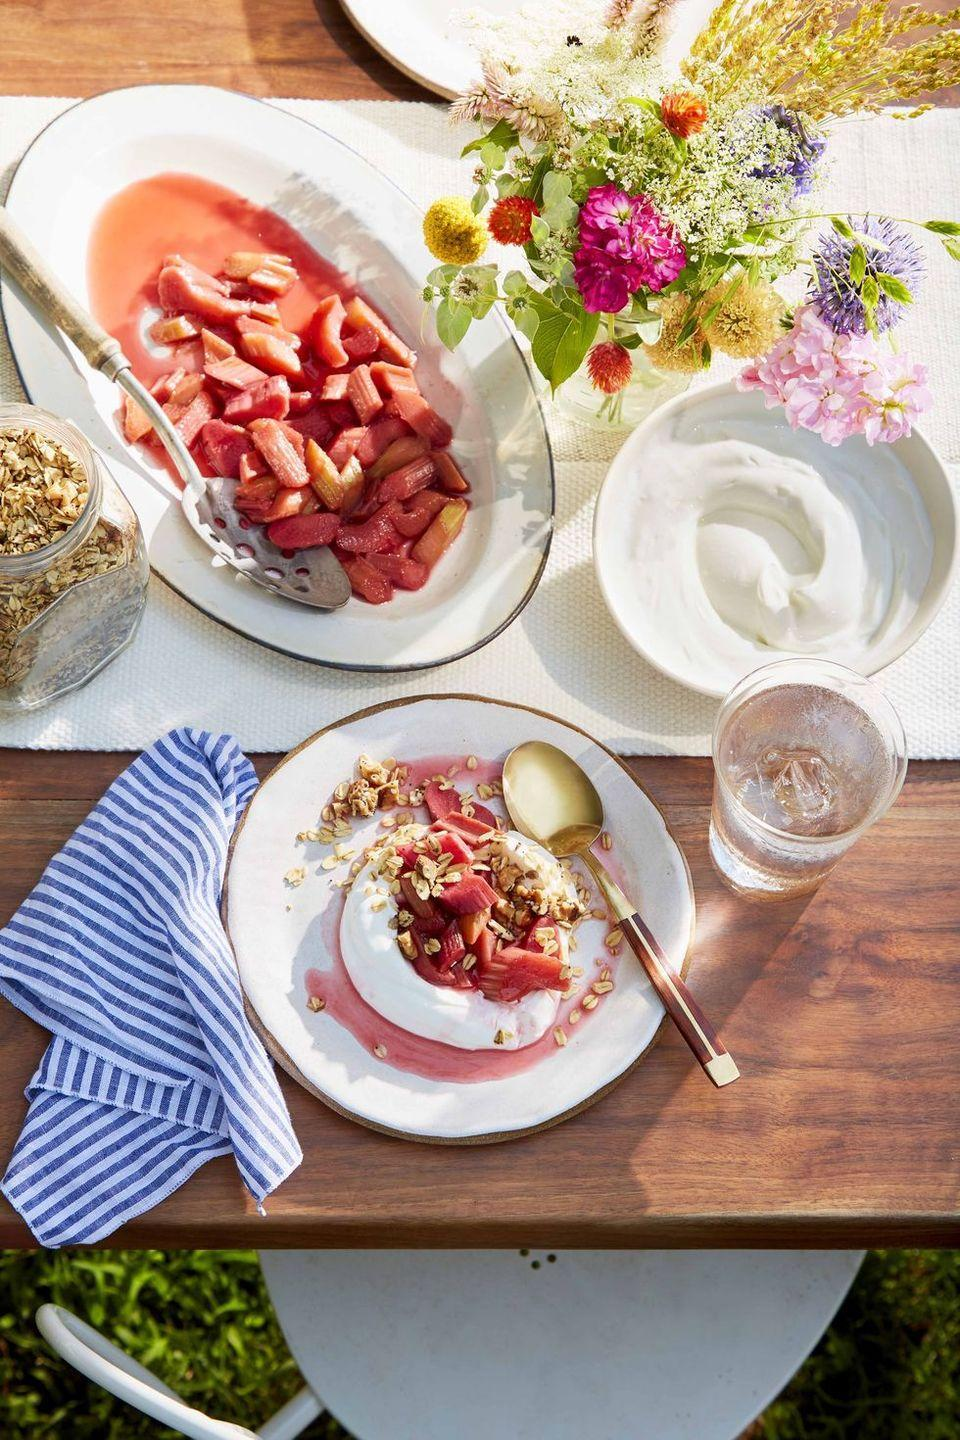 """<p>This three-ingredient recipe is the perfect light dessert to end any spring meal.</p><p><em><a href=""""https://www.countryliving.com/food-drinks/a32353901/poached-rhubarb-with-yogurt/"""" rel=""""nofollow noopener"""" target=""""_blank"""" data-ylk=""""slk:Get the recipe from Country Living »"""" class=""""link rapid-noclick-resp"""">Get the recipe from Country Living »</a></em></p>"""